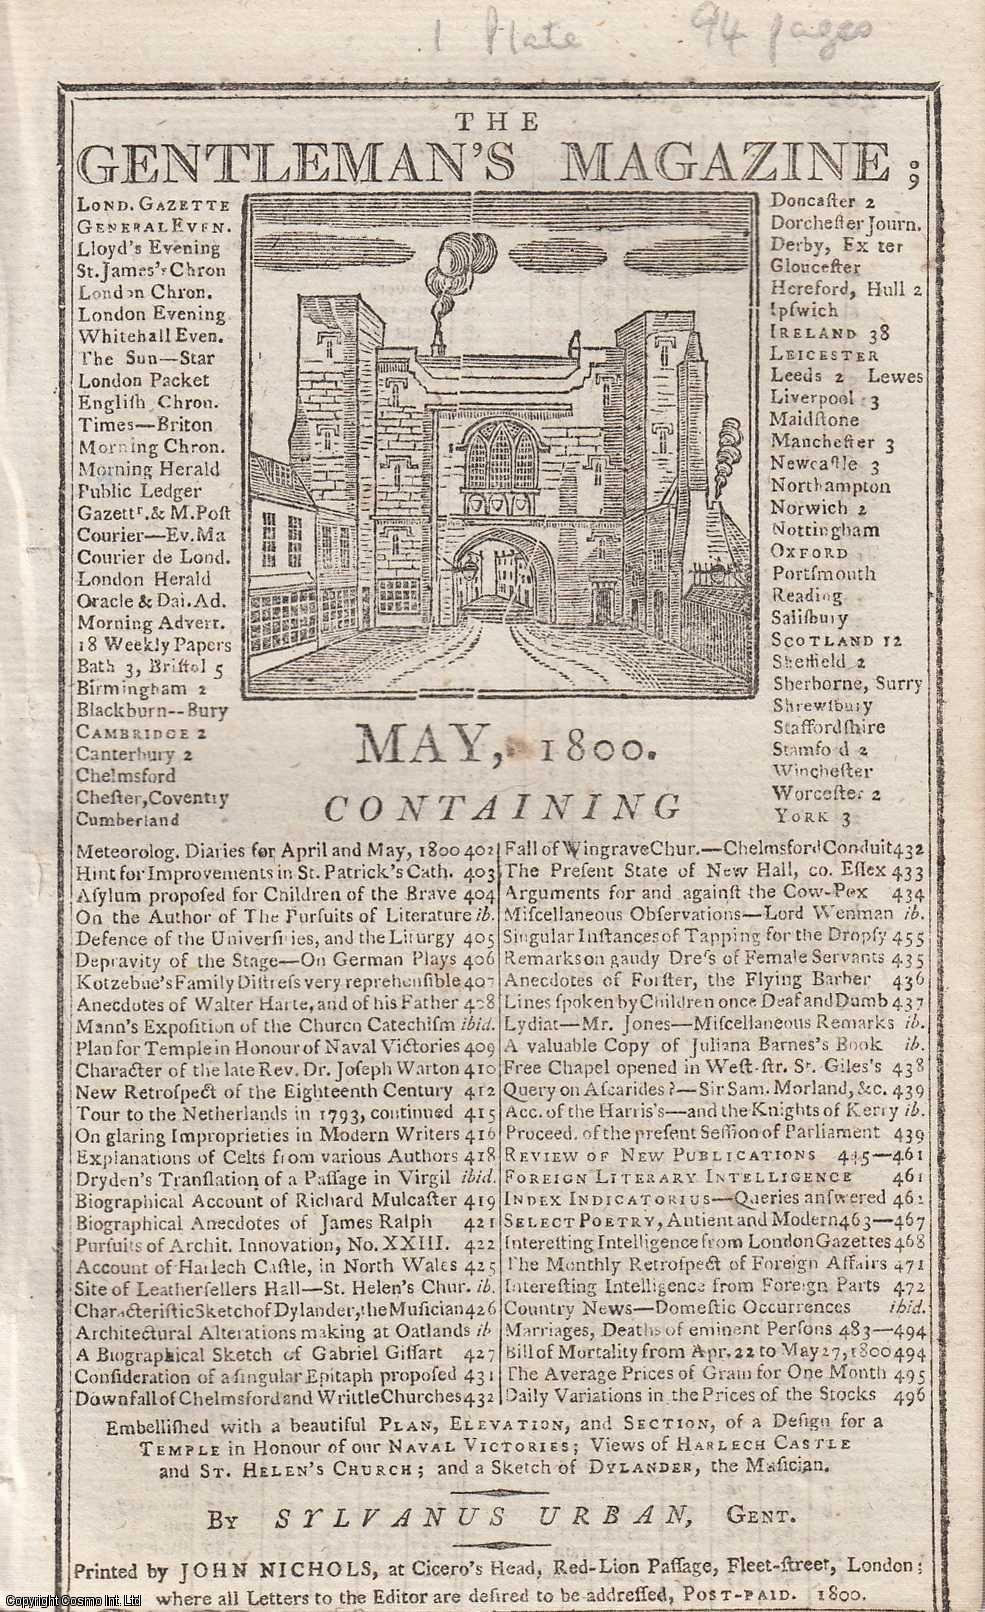 The Gentleman's Magazine for May 1800. FEATURING One Plate; Views of Harlech Castle and St. Helen's Church., Urban, Sylvanus.